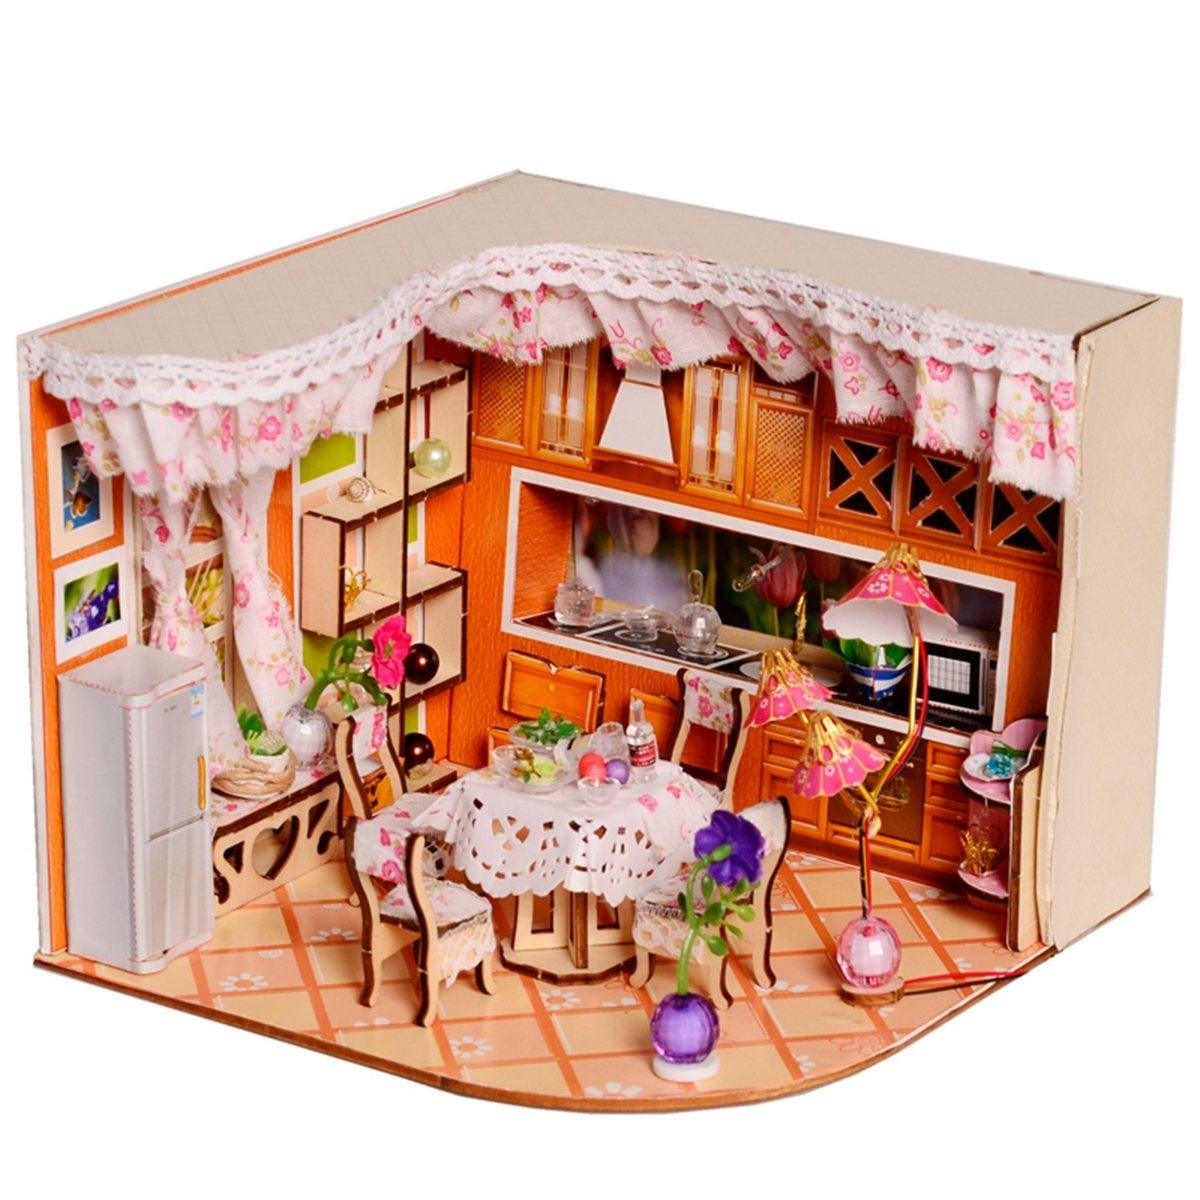 DIY Wooden Kitchen Kit - TopTier Shop Unique Fun Trending Gifts Hot Items Shopping